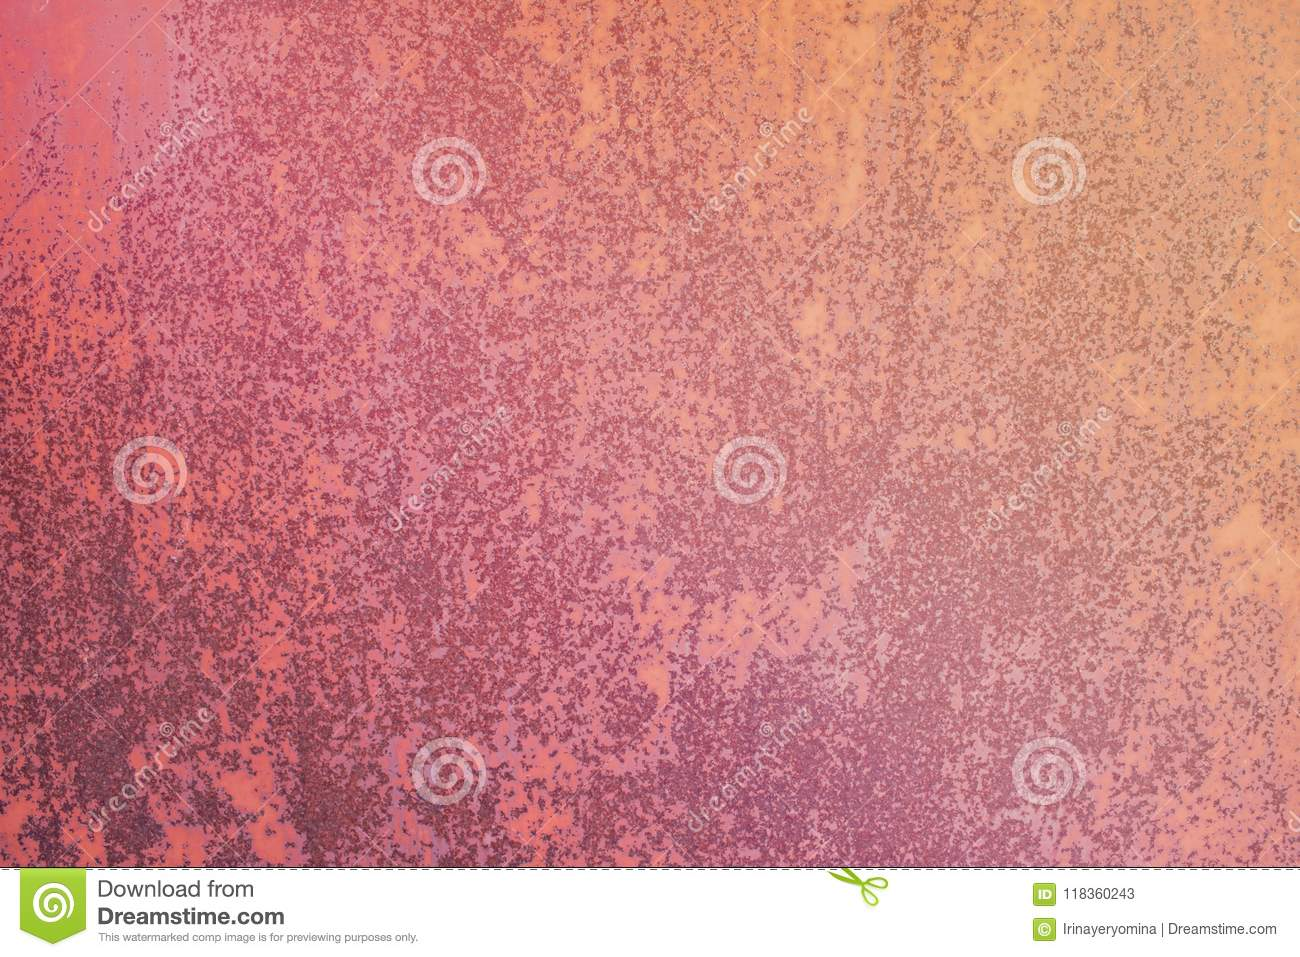 Pink paint cracked metal background. Vintage iron texture